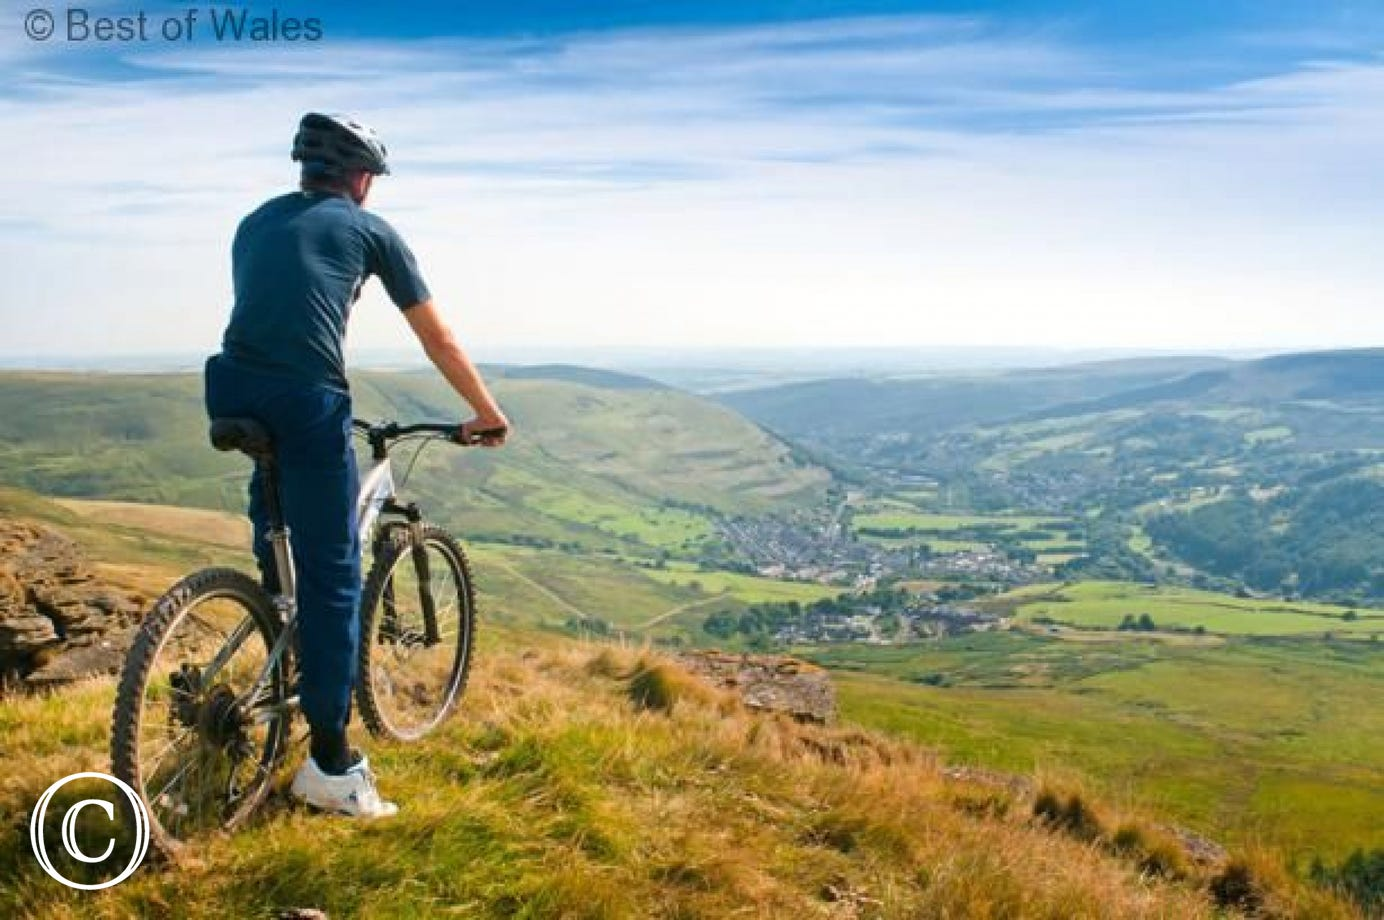 Overlooking Ogmore Valley from Bwlch-y-Clawdd. Route starts 8 miles away (Sarn Loop via Bwlch and Caerau bike ride)